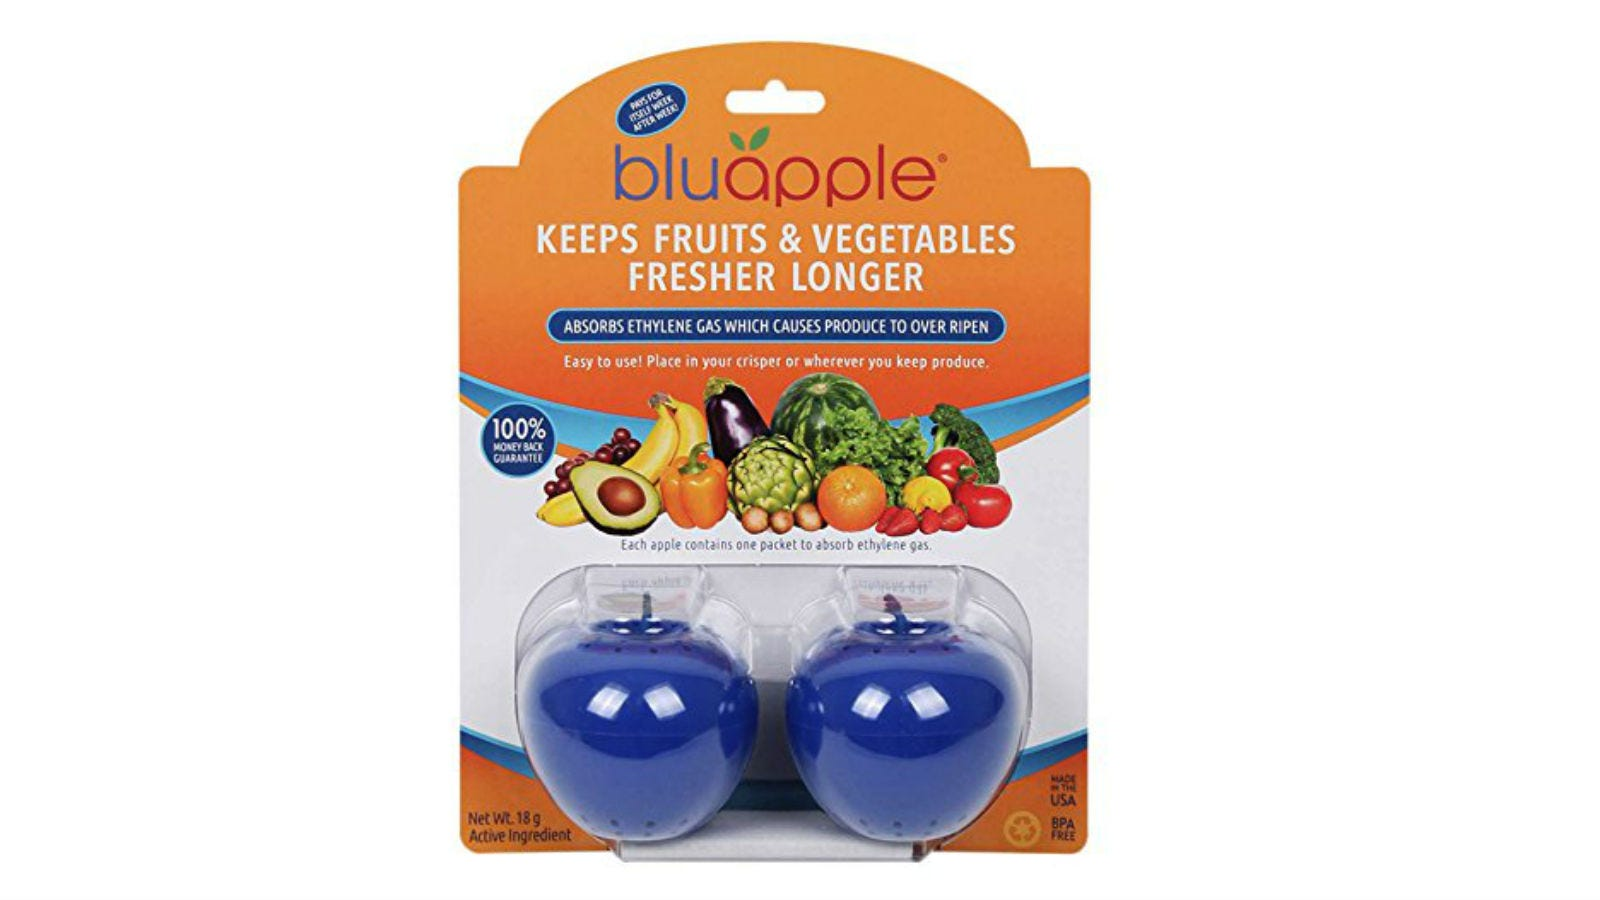 A two-pack of Bluapple Produce Freshness Saver Balls.